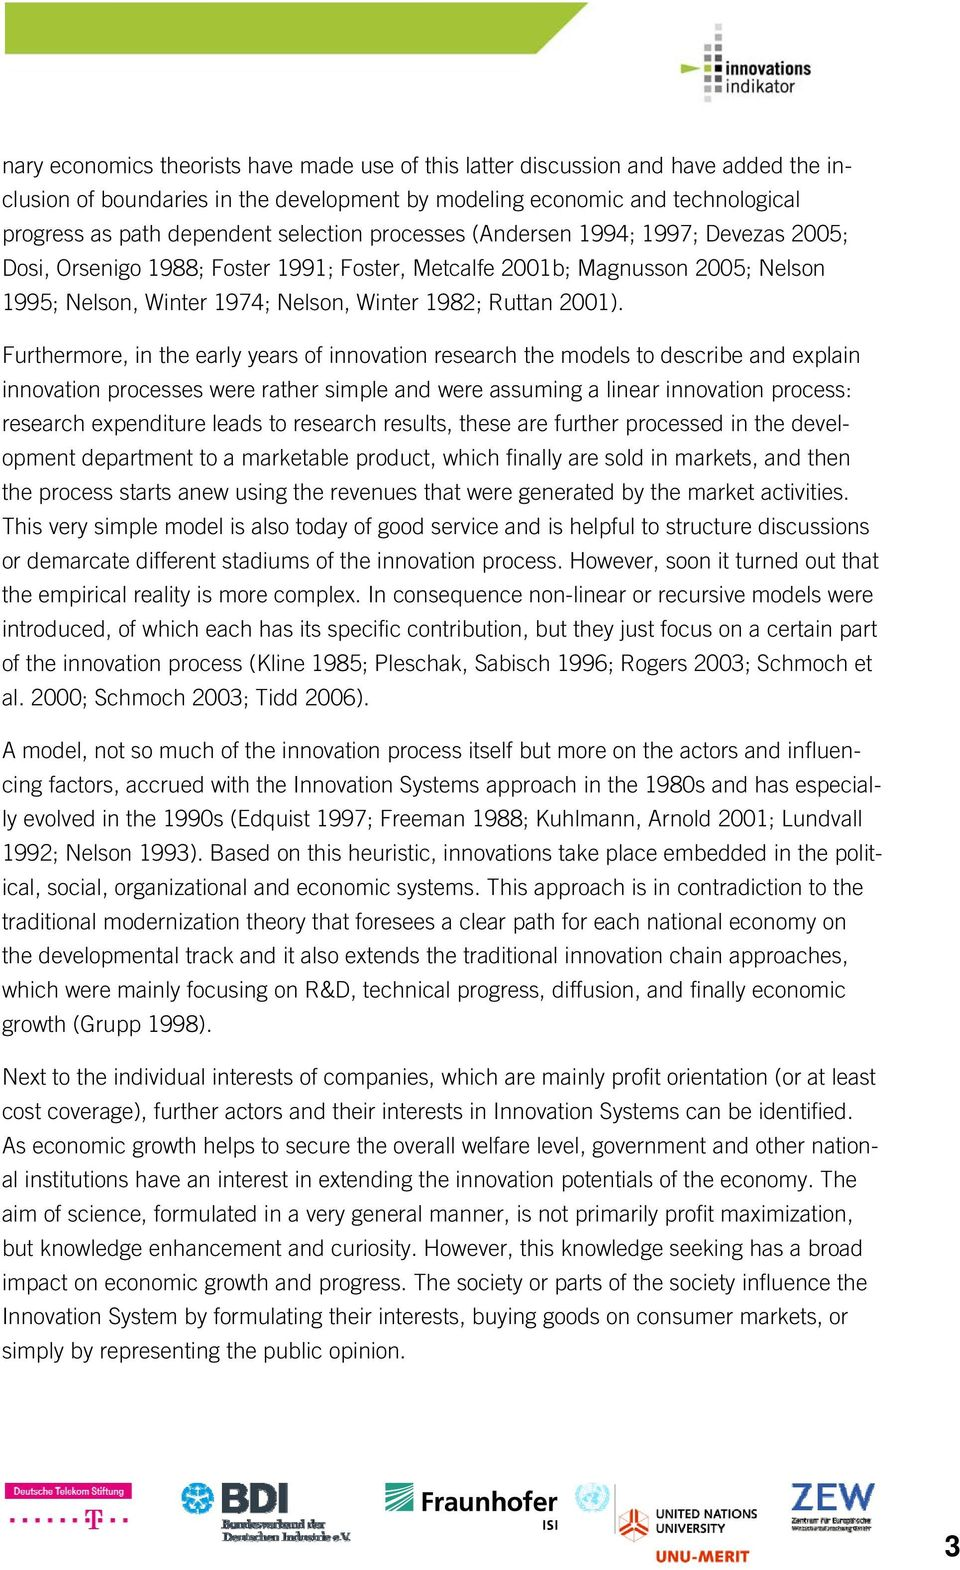 Furthermore, in the early years of innovation research the models to describe and explain innovation processes were rather simple and were assuming a linear innovation process: research expenditure